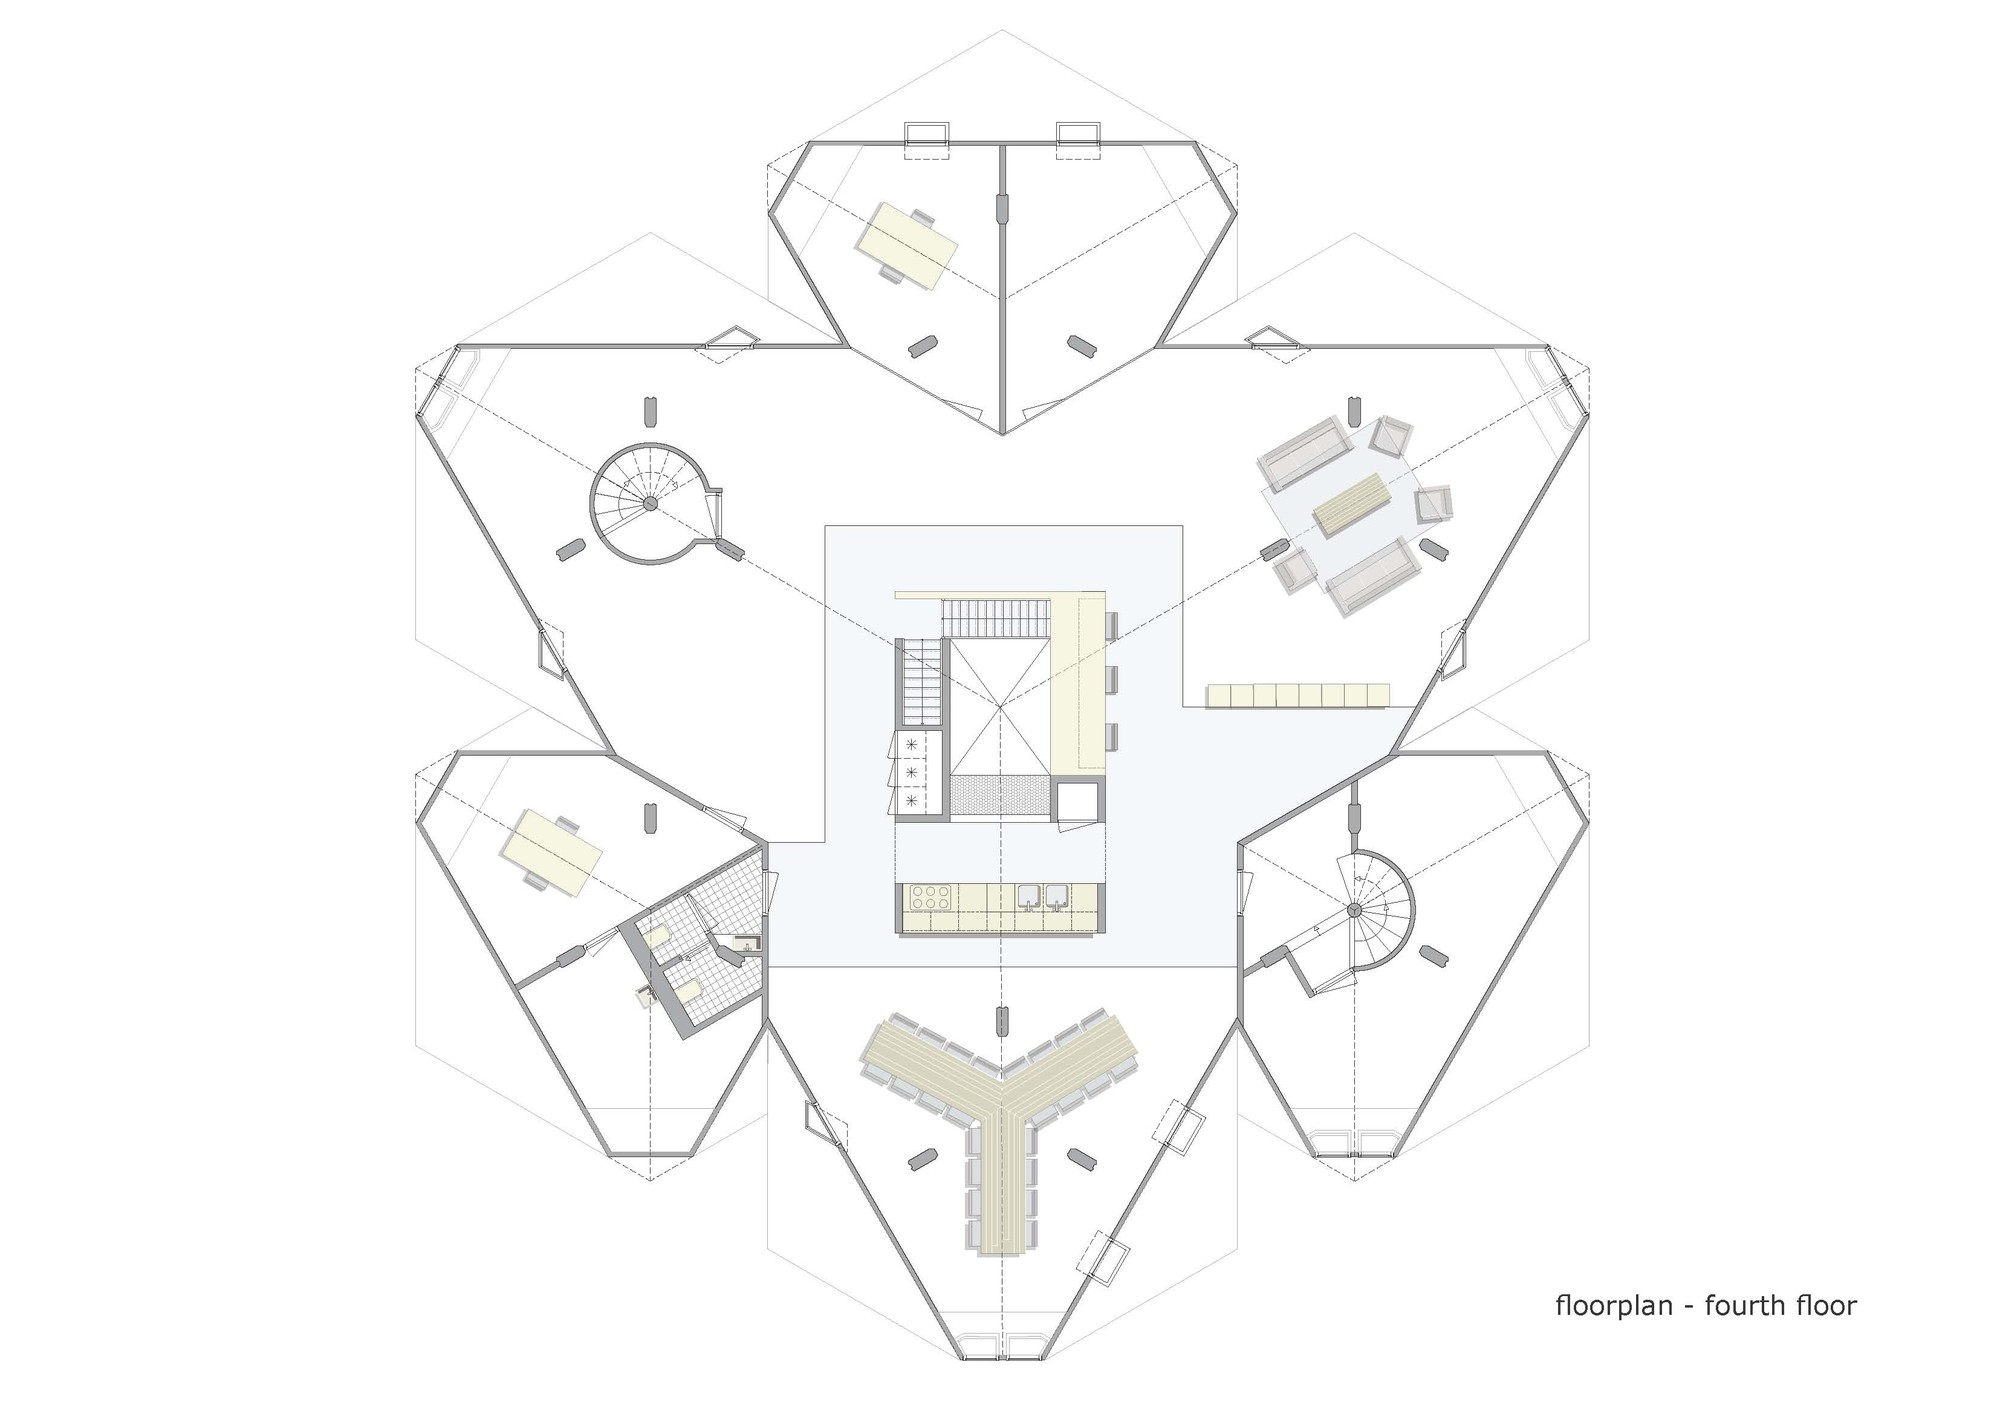 521829a0e8e44e45fc00001f Exodus Cube Personal Architecture Bna Fourth Floor Plan on Floor Plan Drawing